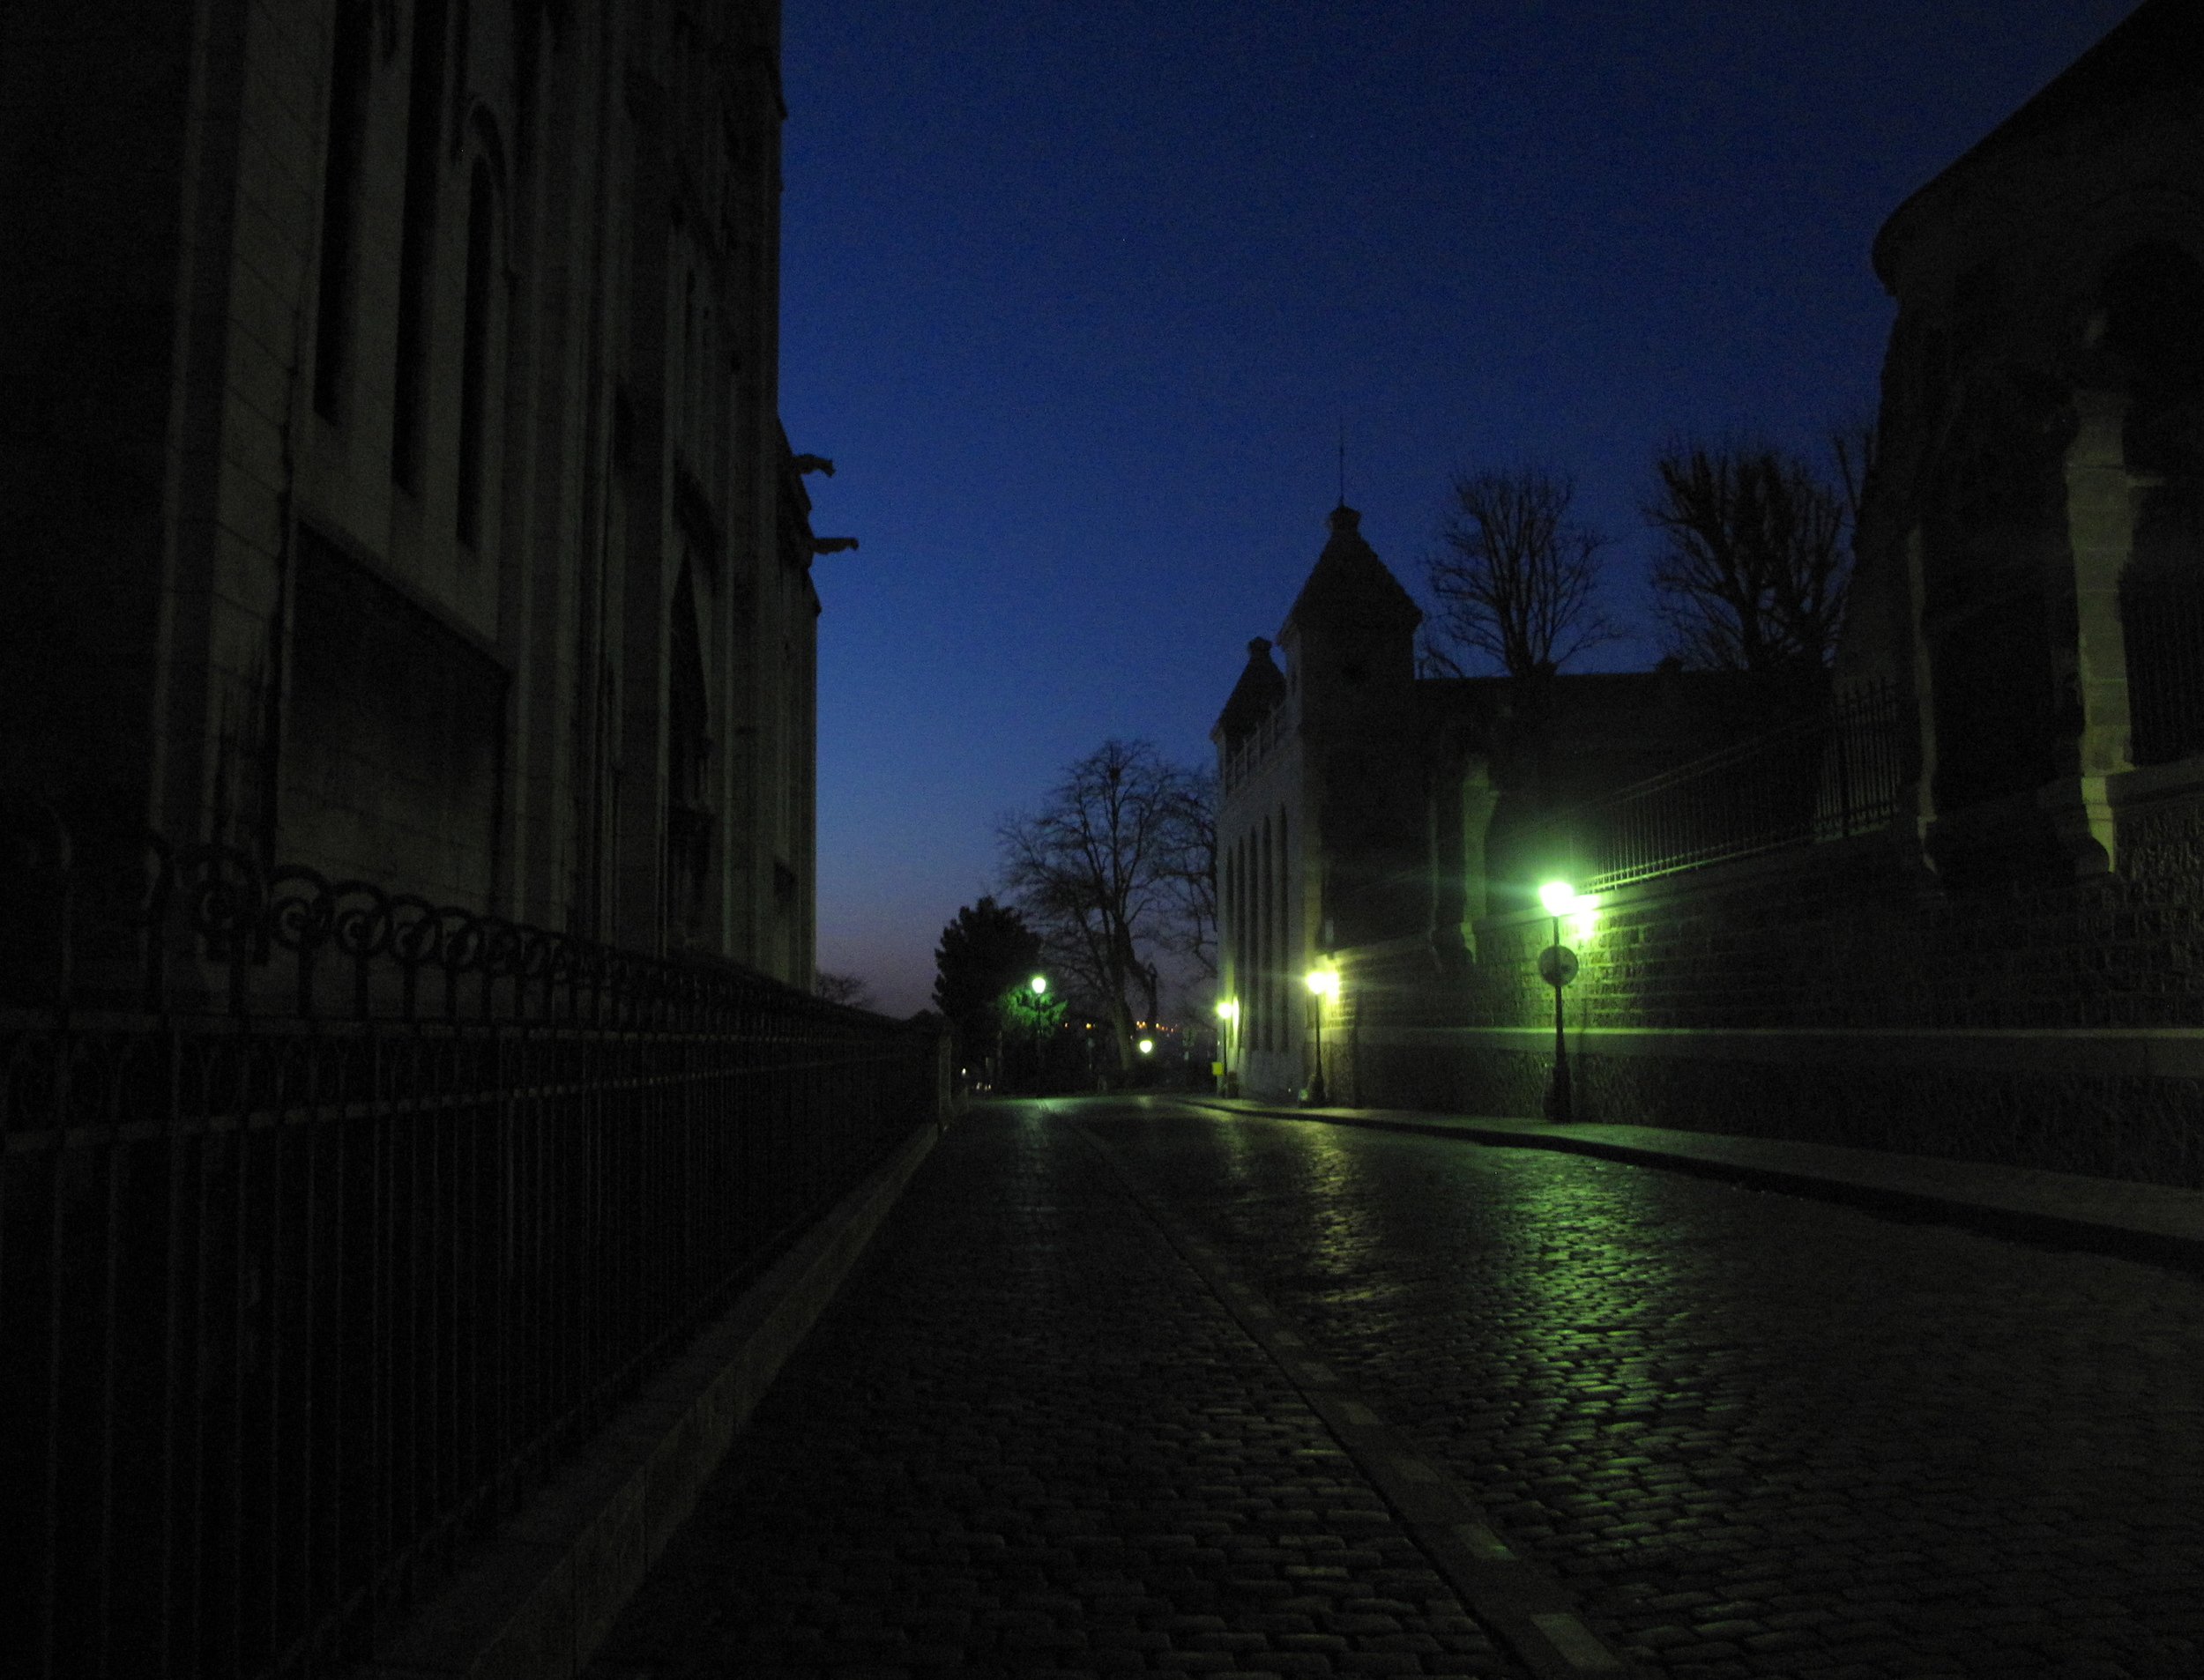 Running to catch the sunrise at Sacrè Coeur